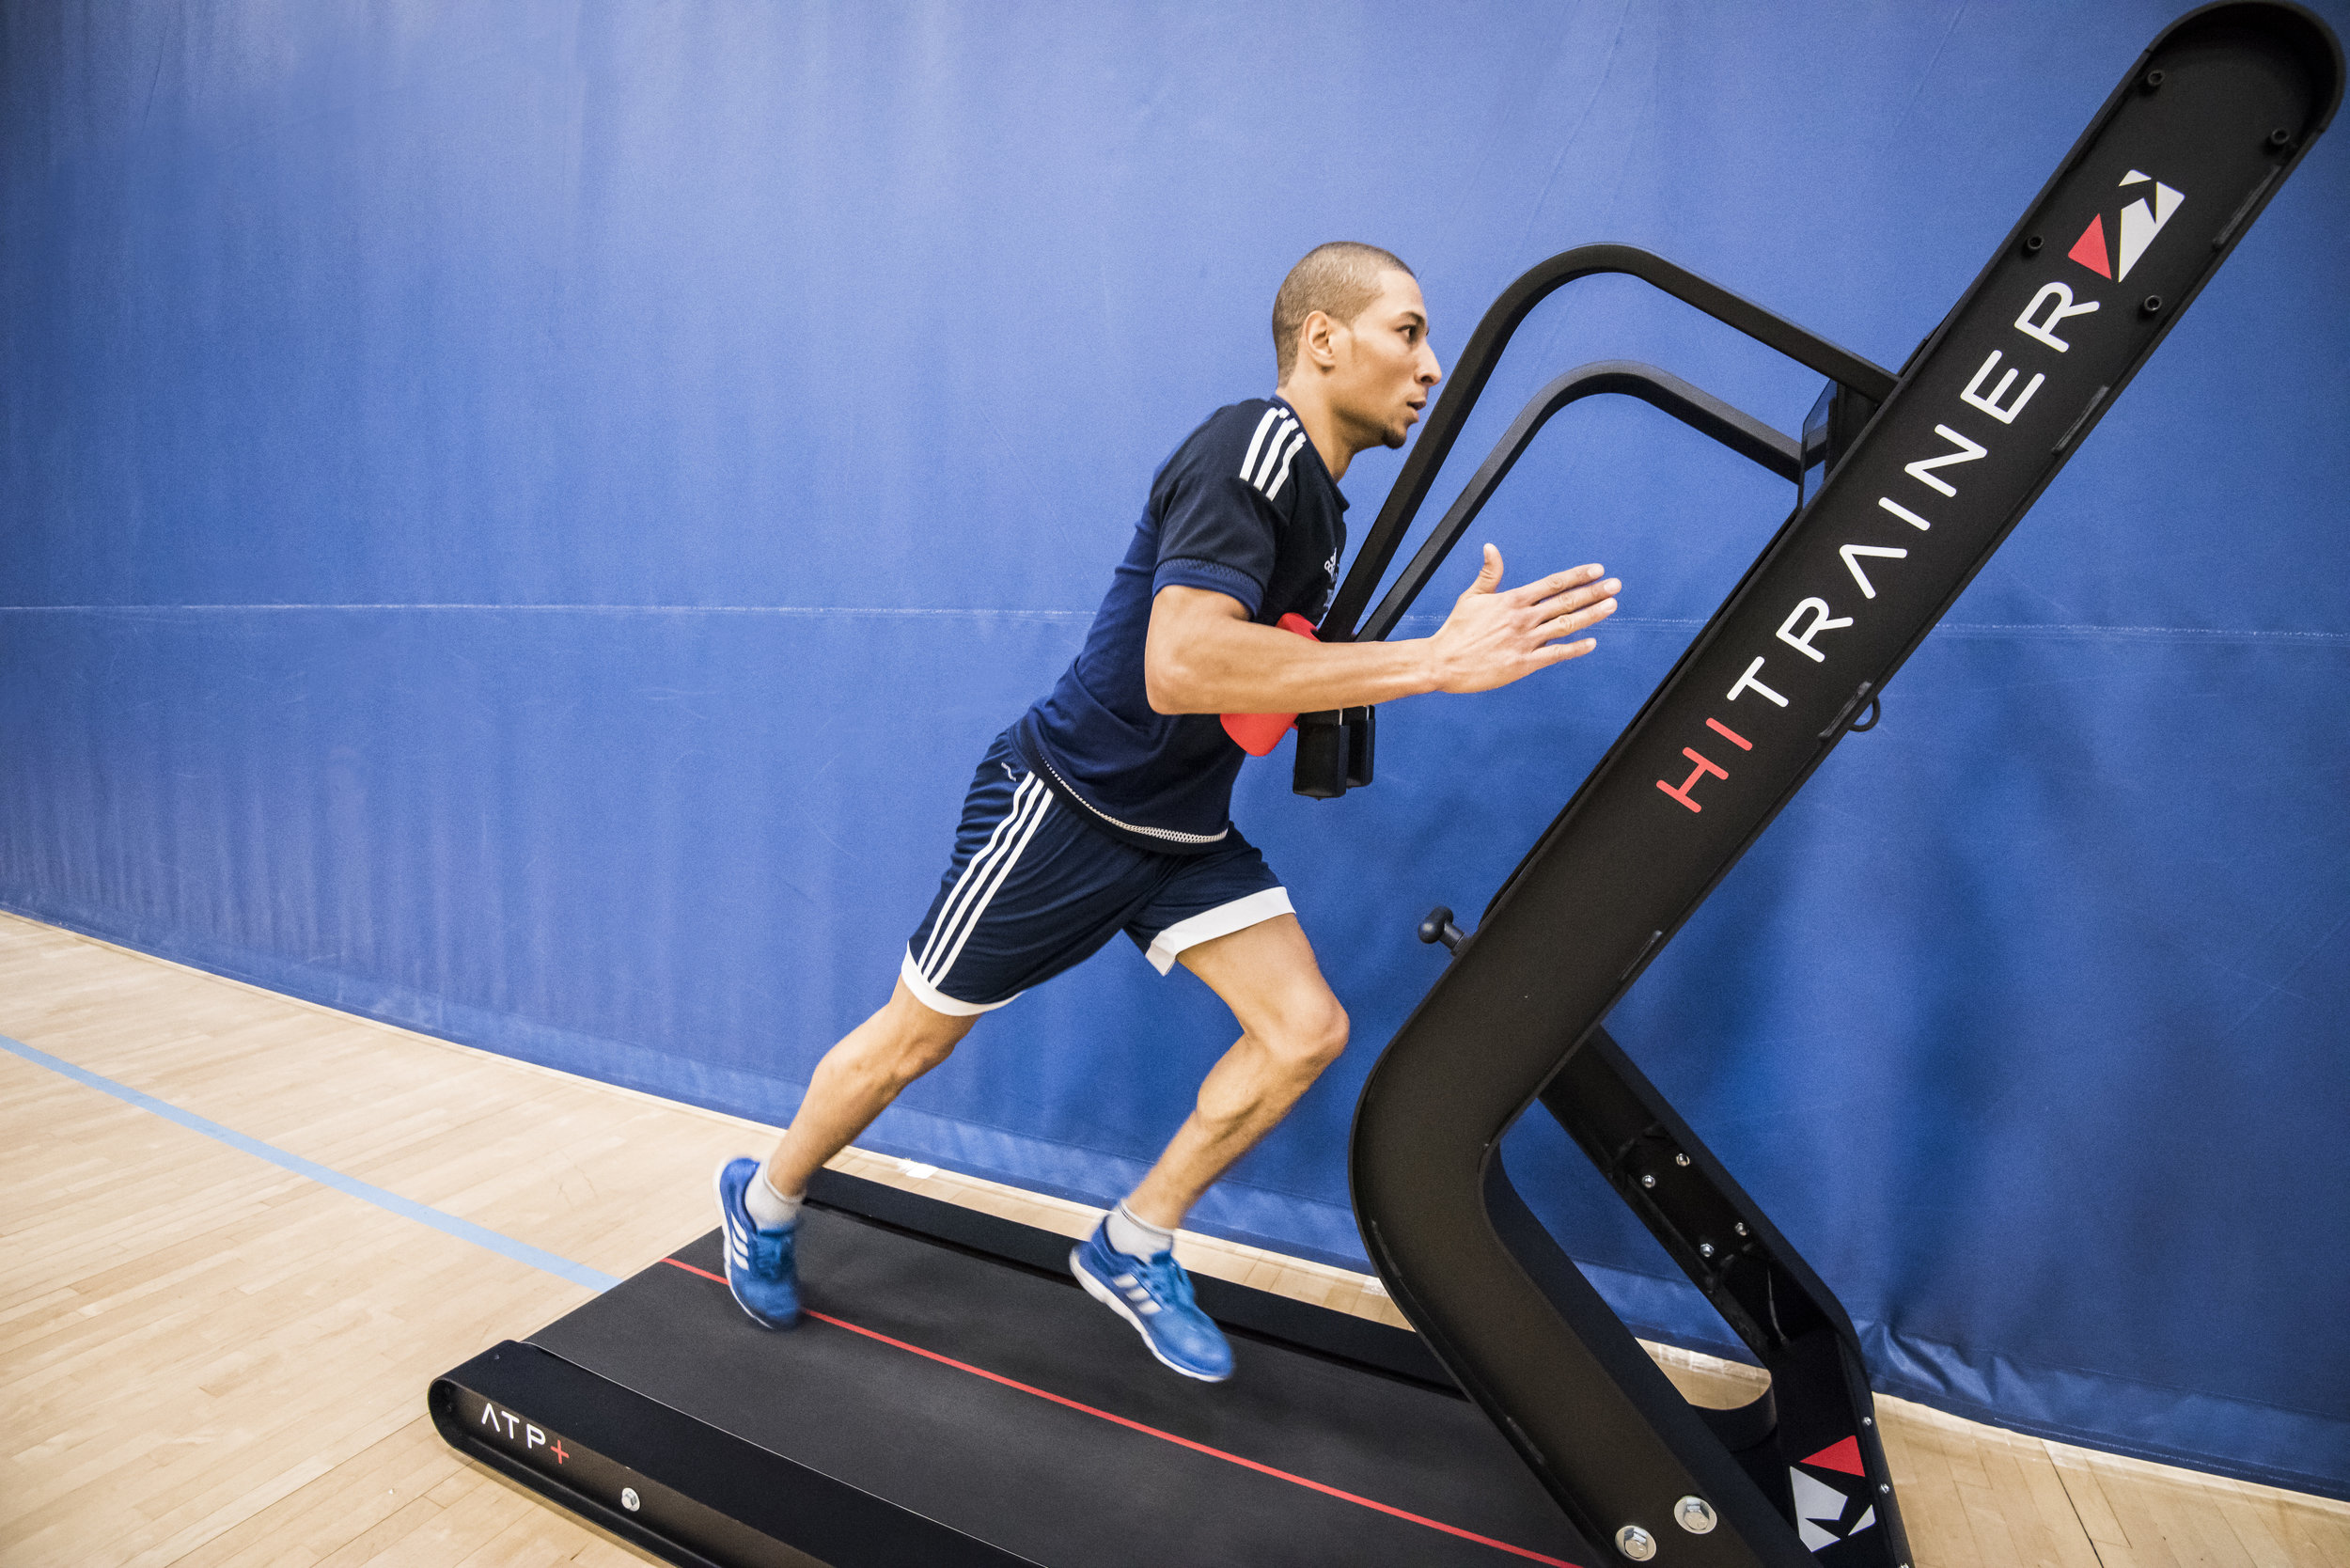 RESSOURCE CENTER - Our bibliography with the latest studies about High Intensity Interval Training.